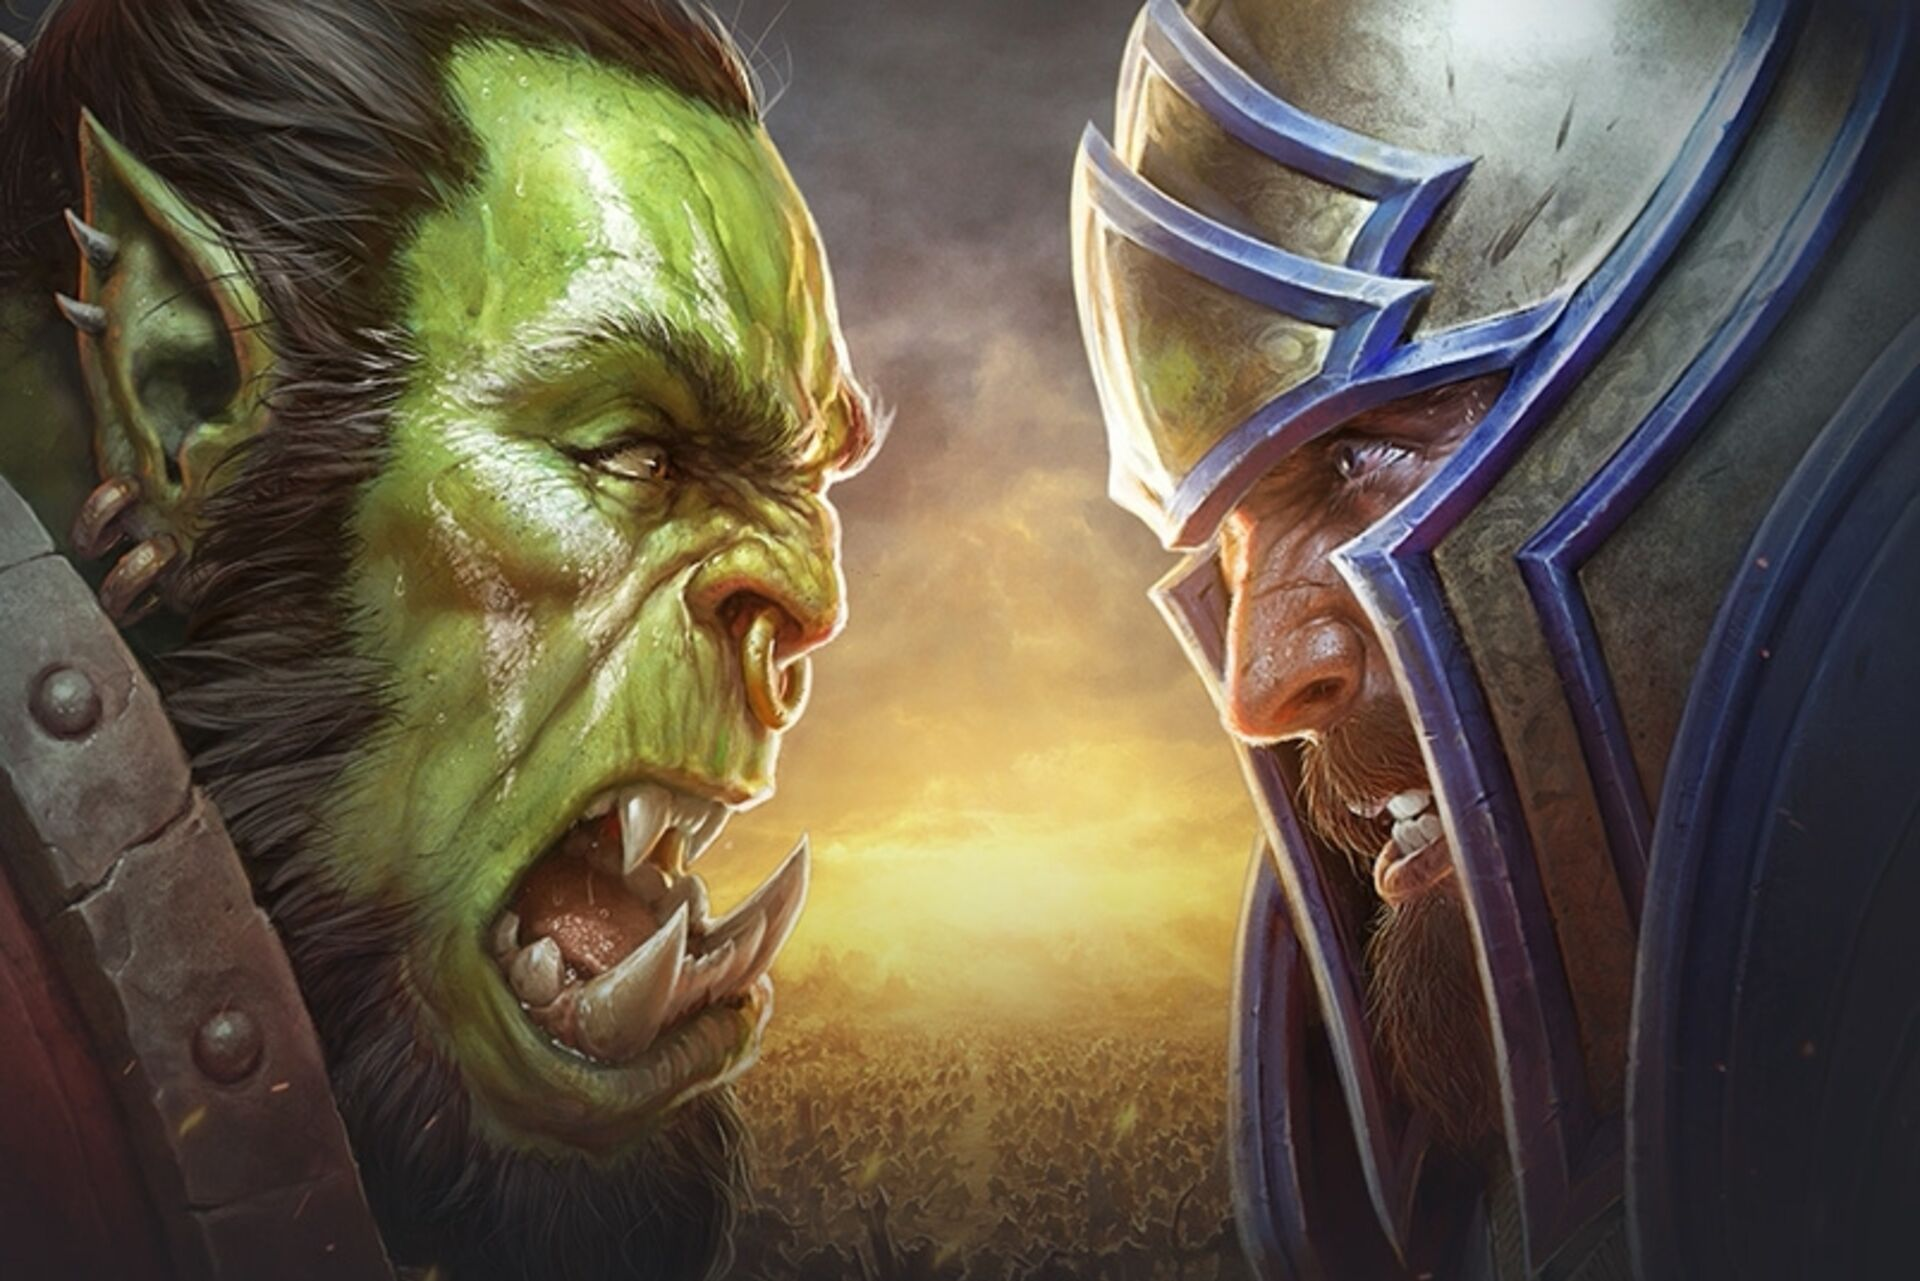 World of Warcraft expansion Battle for Azeroth will be released this